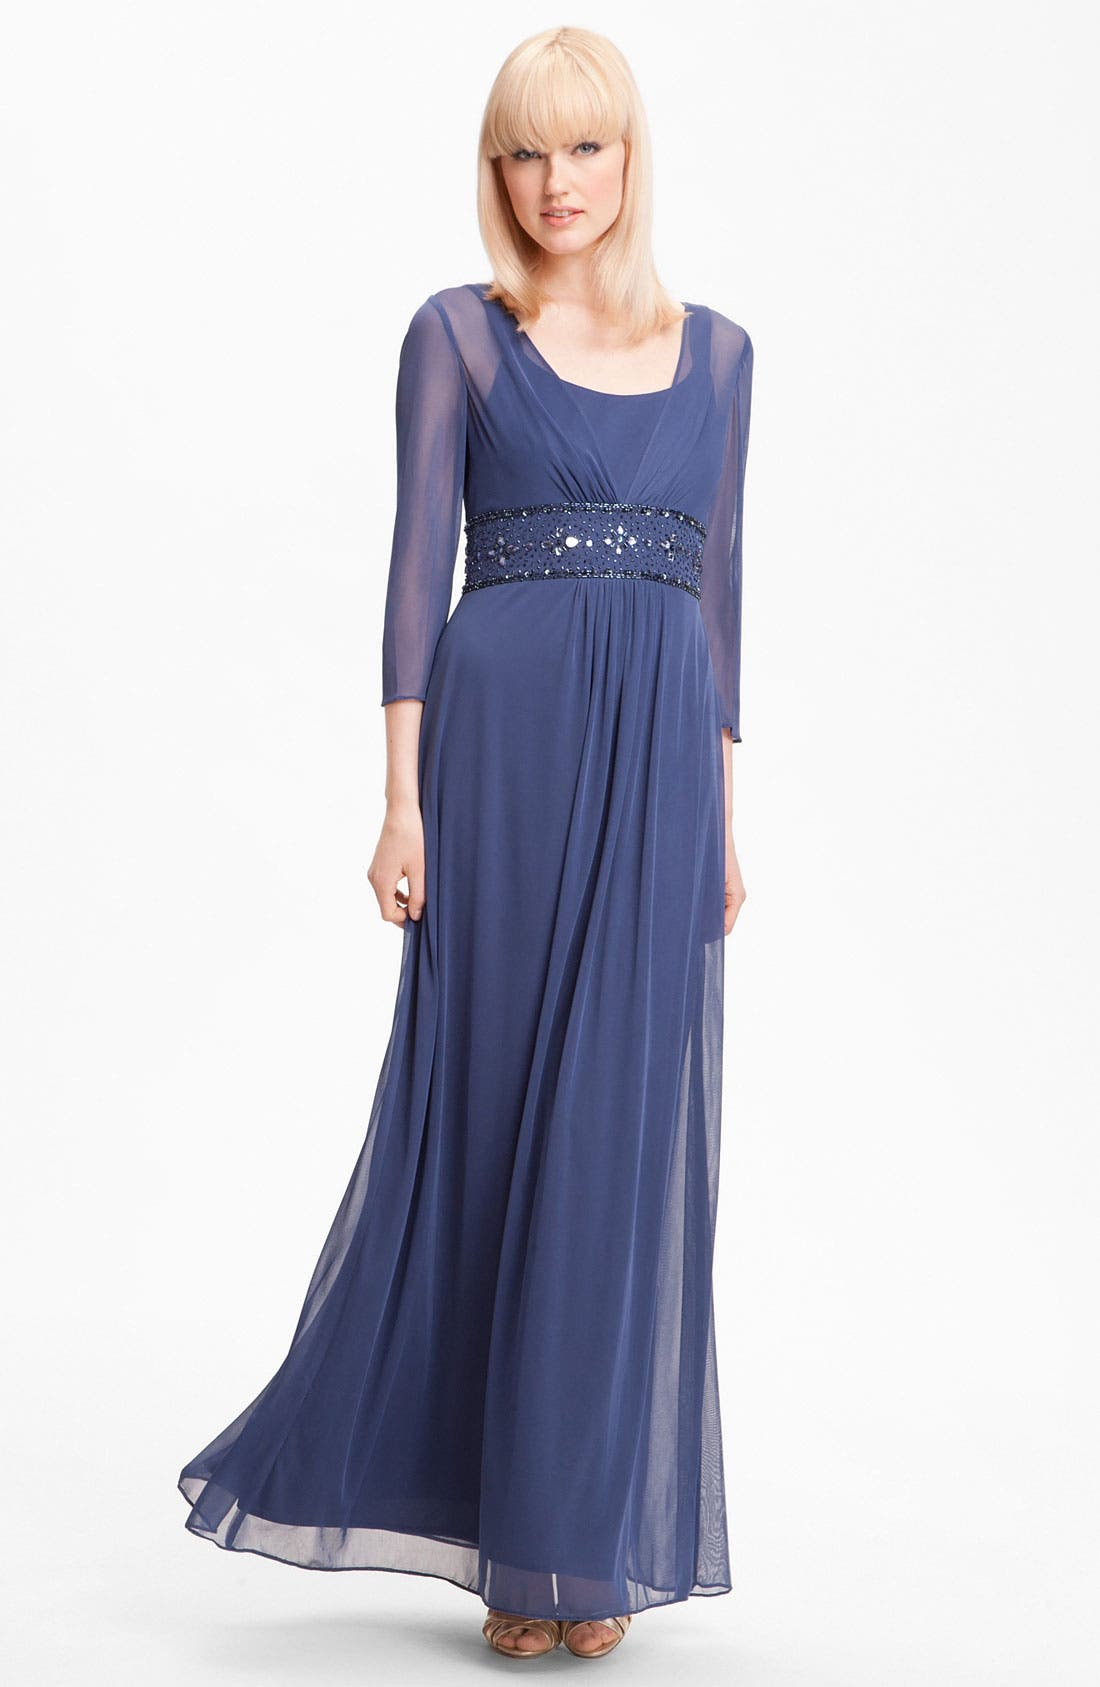 Alternate Image 1 Selected - Alex Evenings Long Sleeve Bead Waist Mesh Gown (Petite)